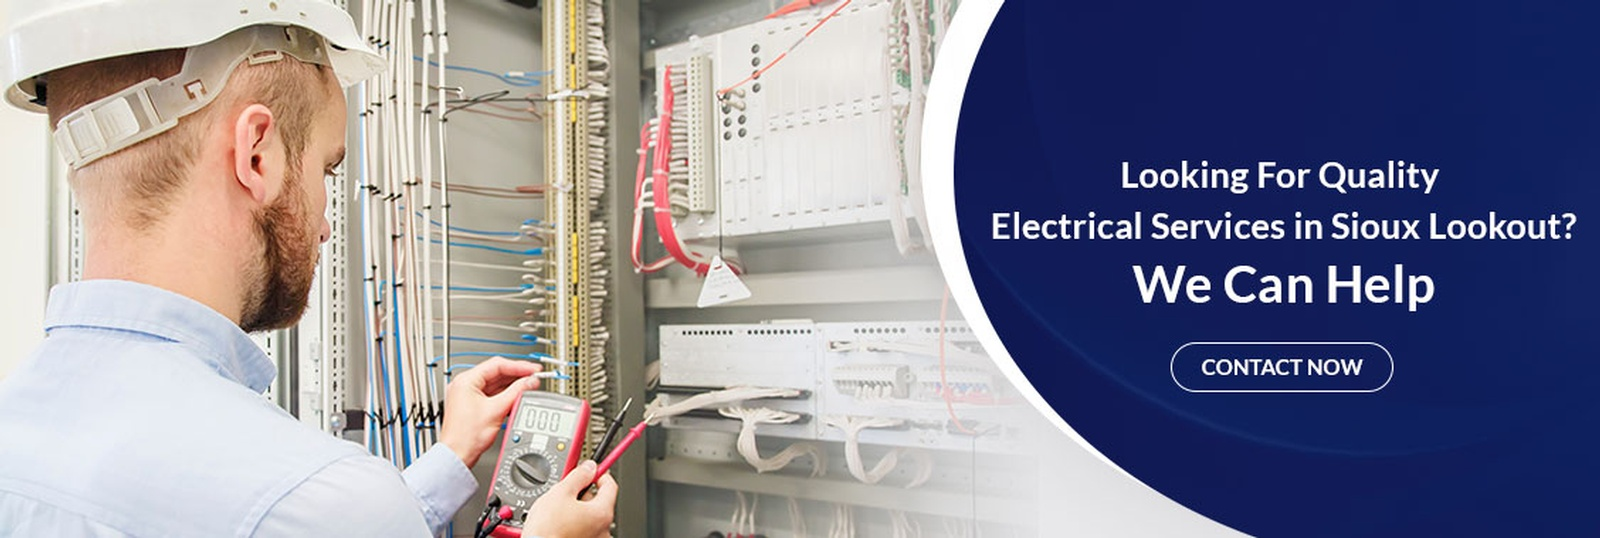 Commercial Electrical Services in Sioux Lookout